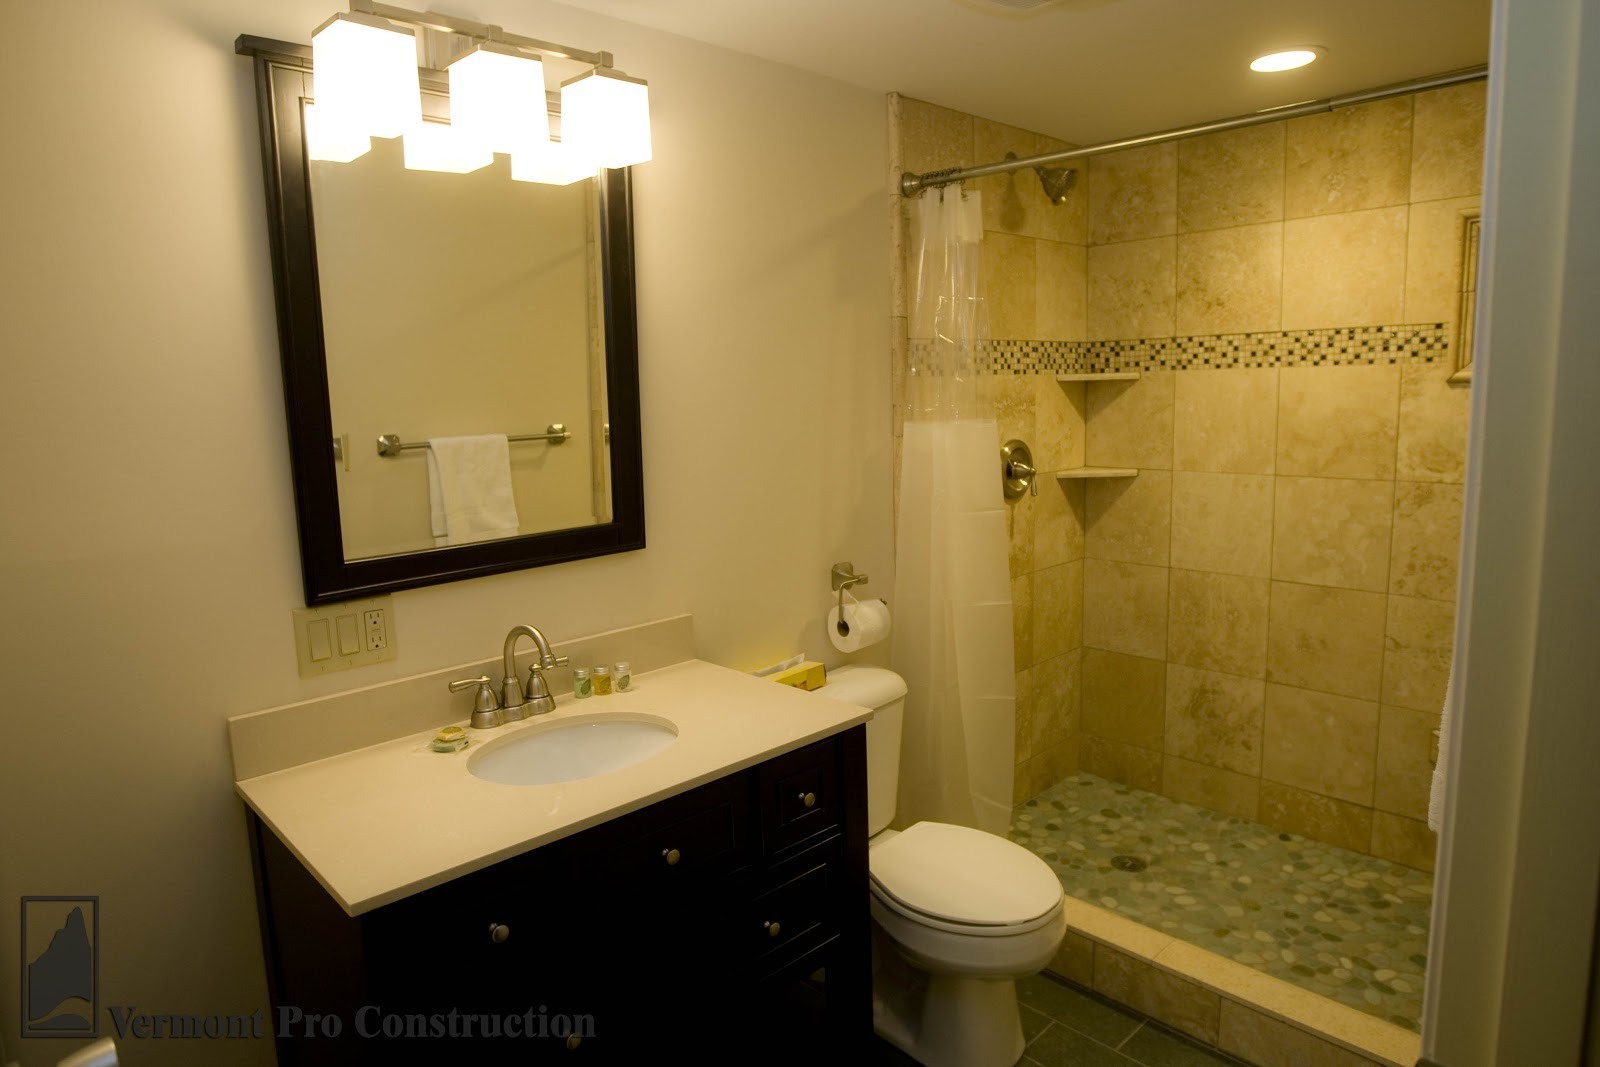 vermont professional construction & painting llc: tolchin bathroom